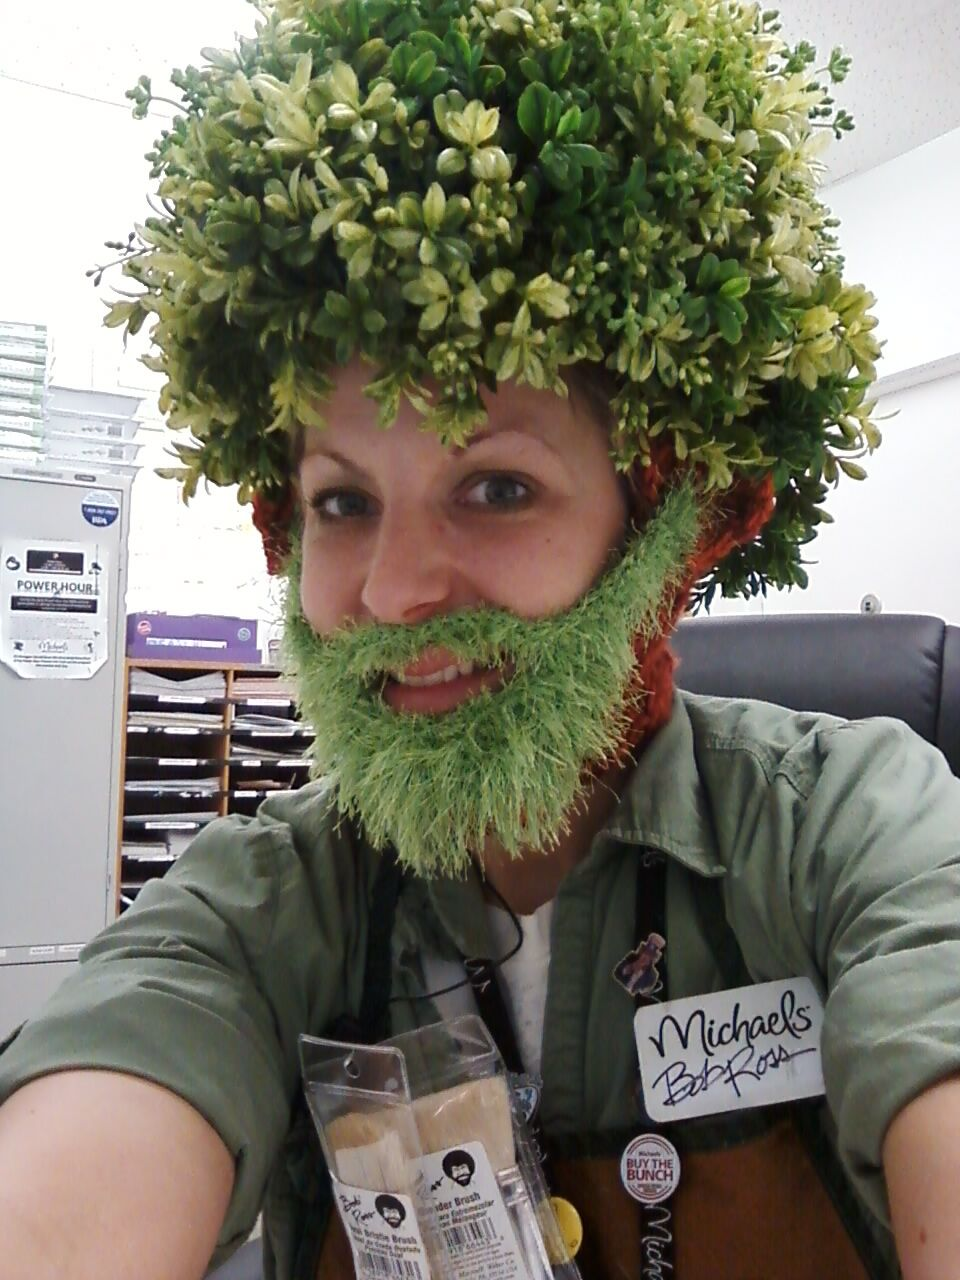 Bob Ross Chia Pet I Crocheted The Head And Beard Then Sewed The Greenery Piece By Piece It Took About 4 Leaf Garl Chia Pet Costumes Chia Pet Halloween Memes